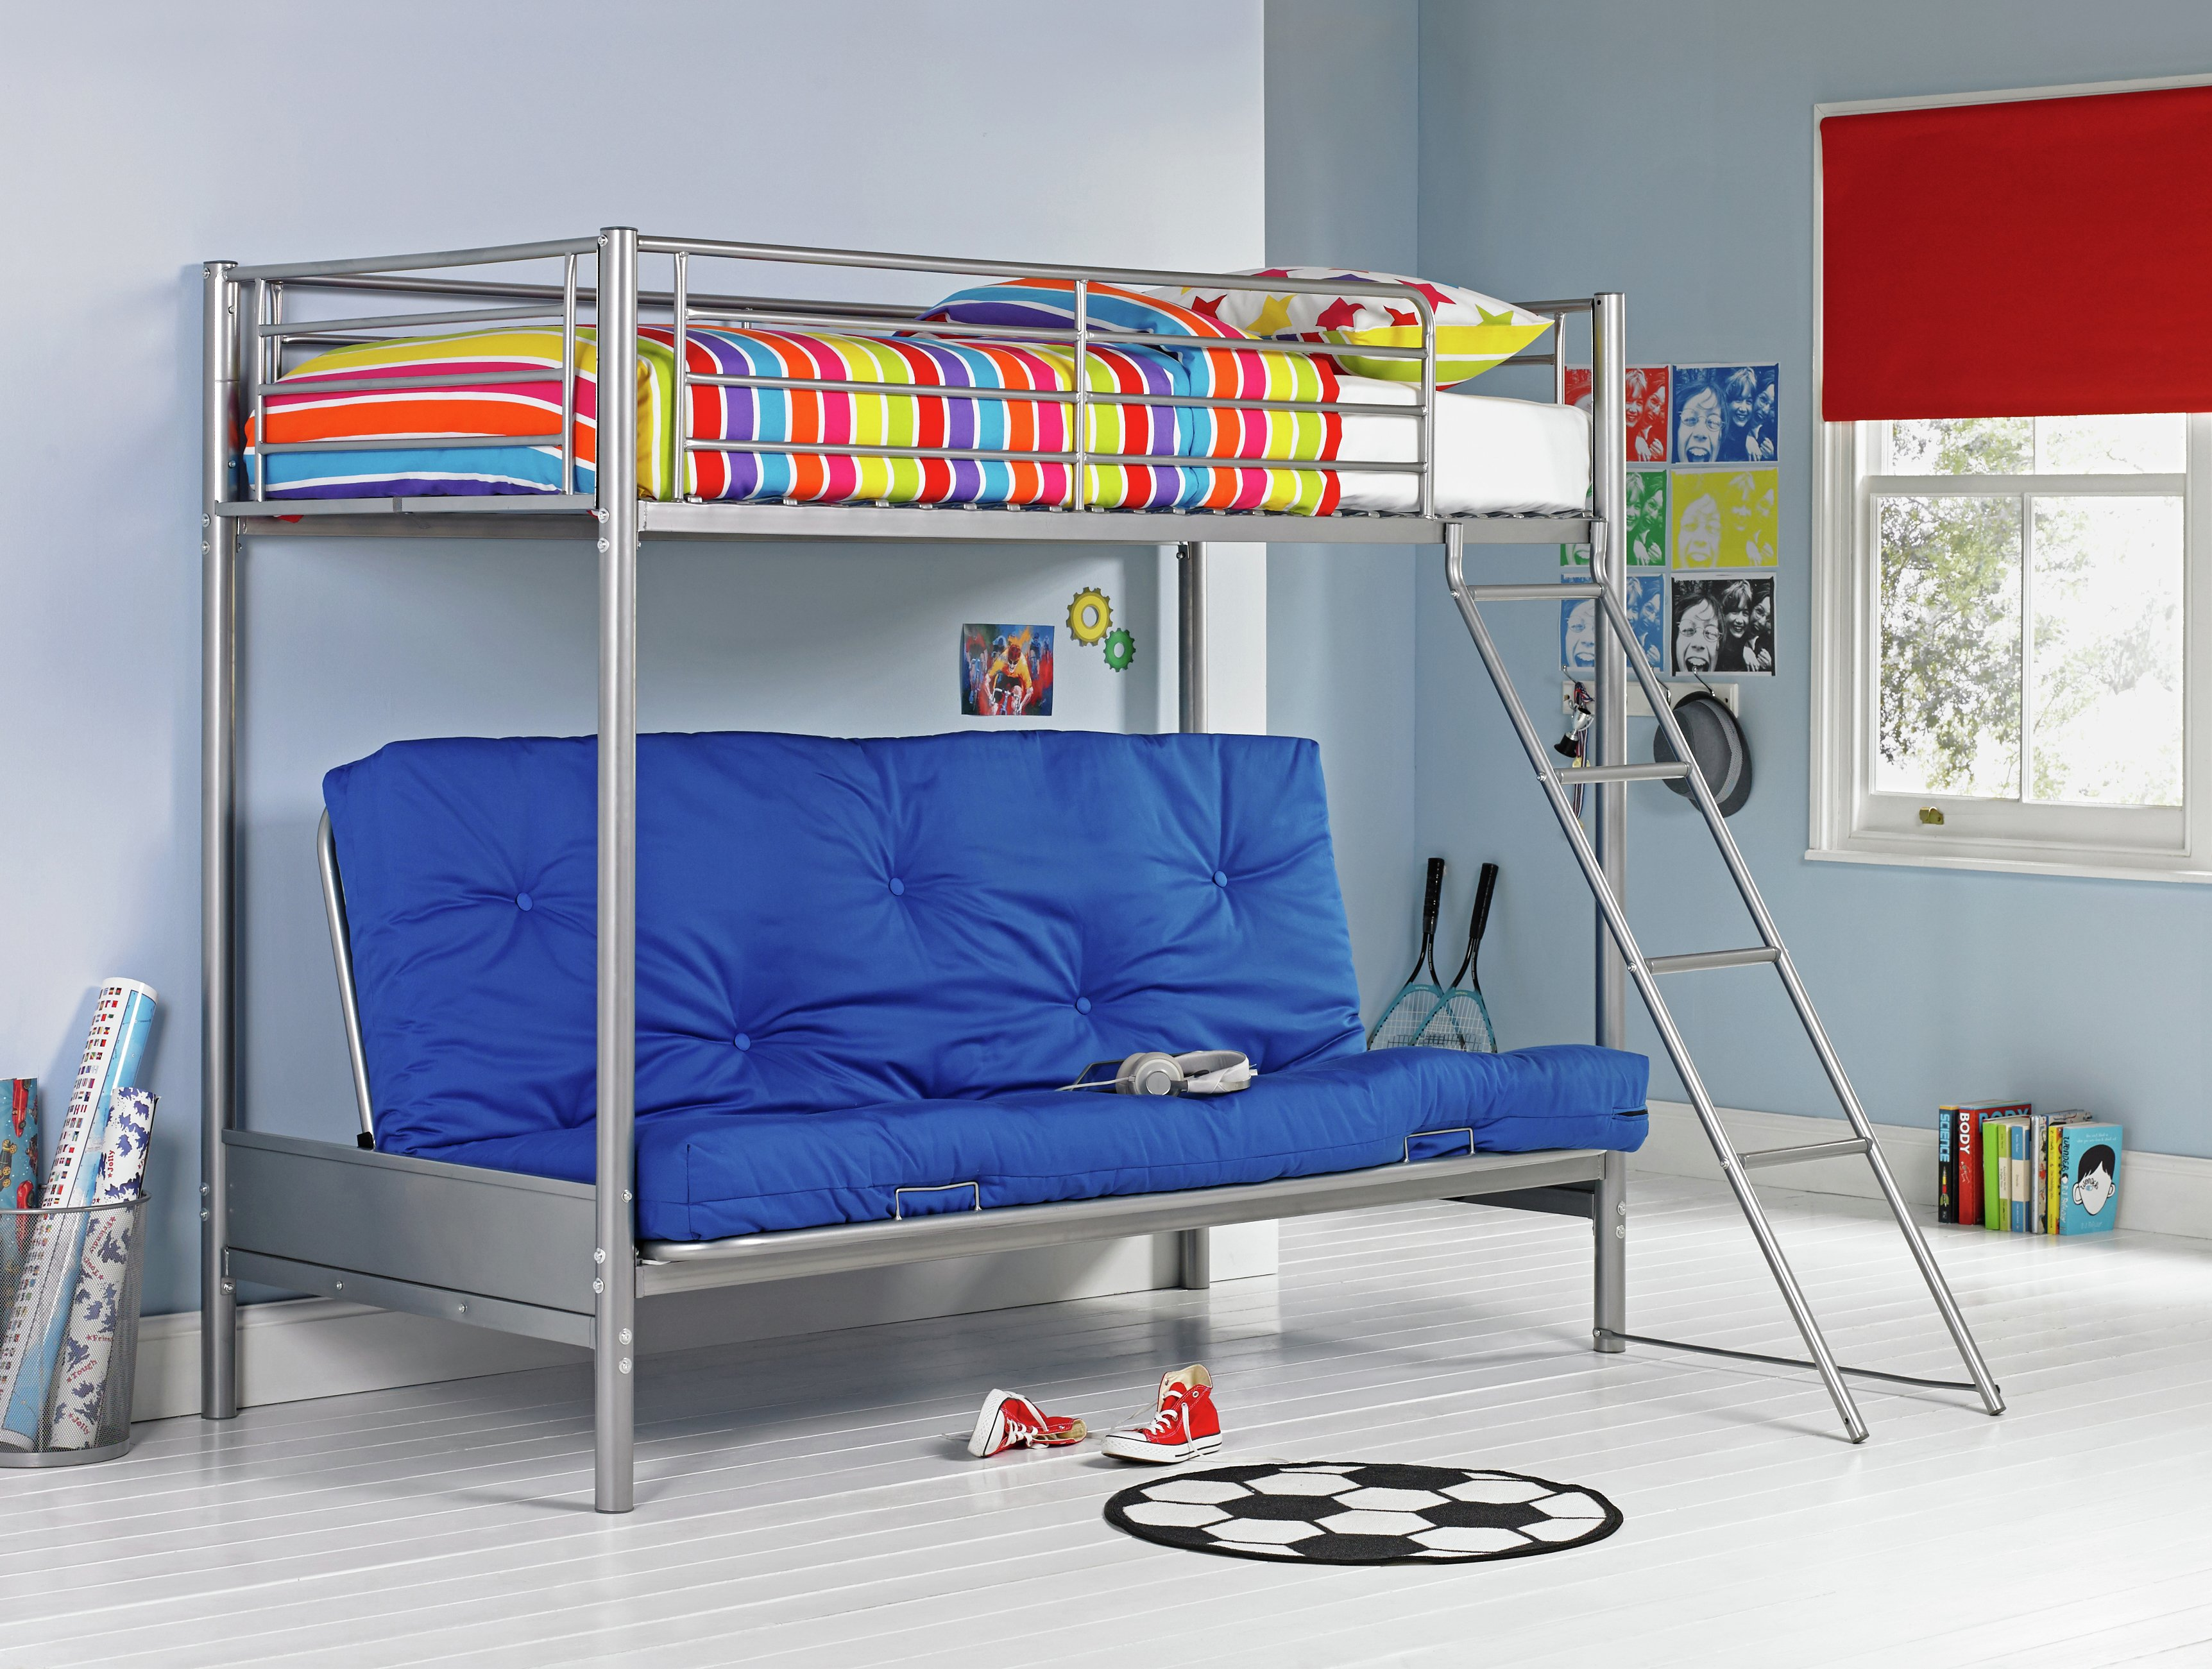 bunk beds with sofa bed underneath argos ciara leon buy home metal frame blue futon kids